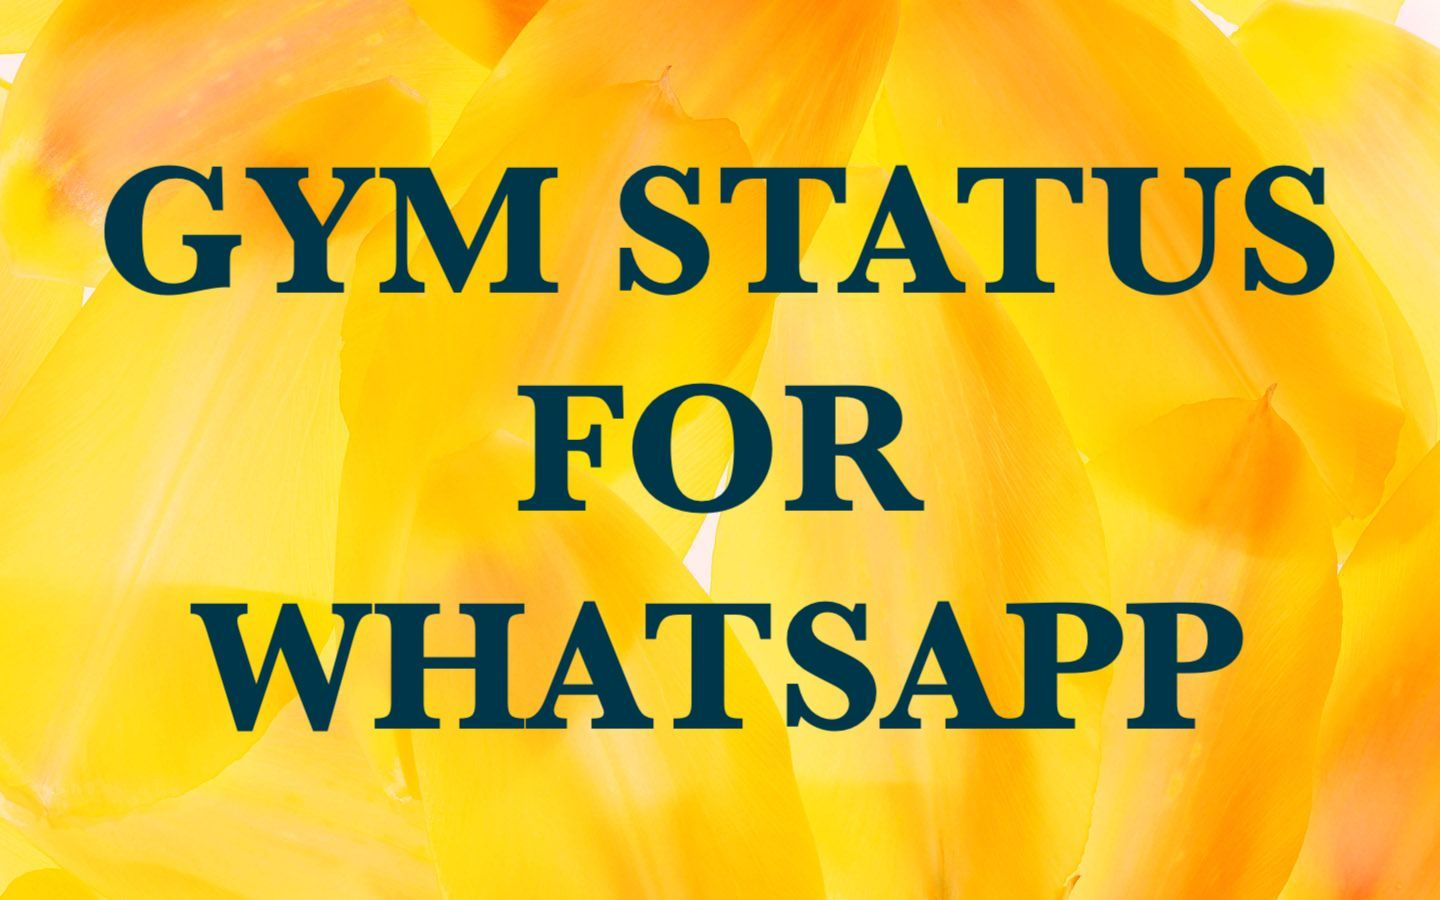 Gym Motivational Status For Whatsappfacebook Quotes